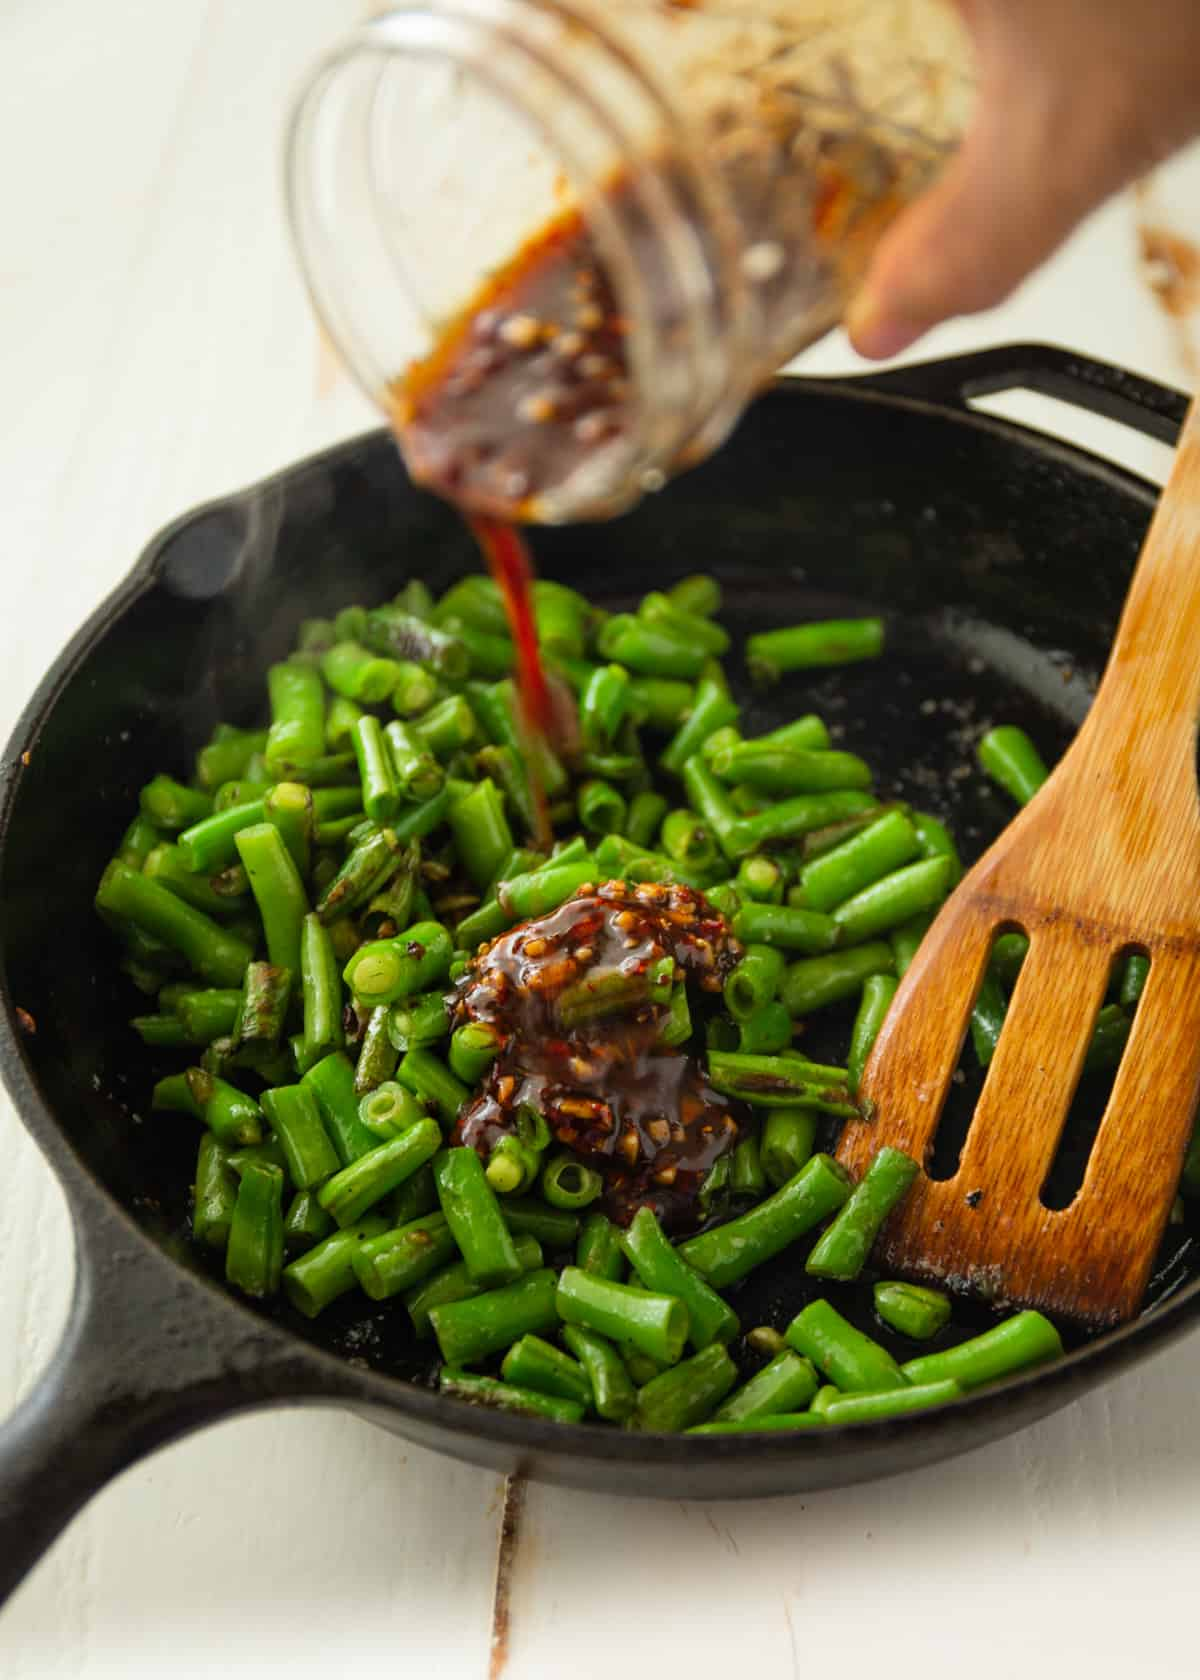 adding sauce to green beans in a cast iron skillet